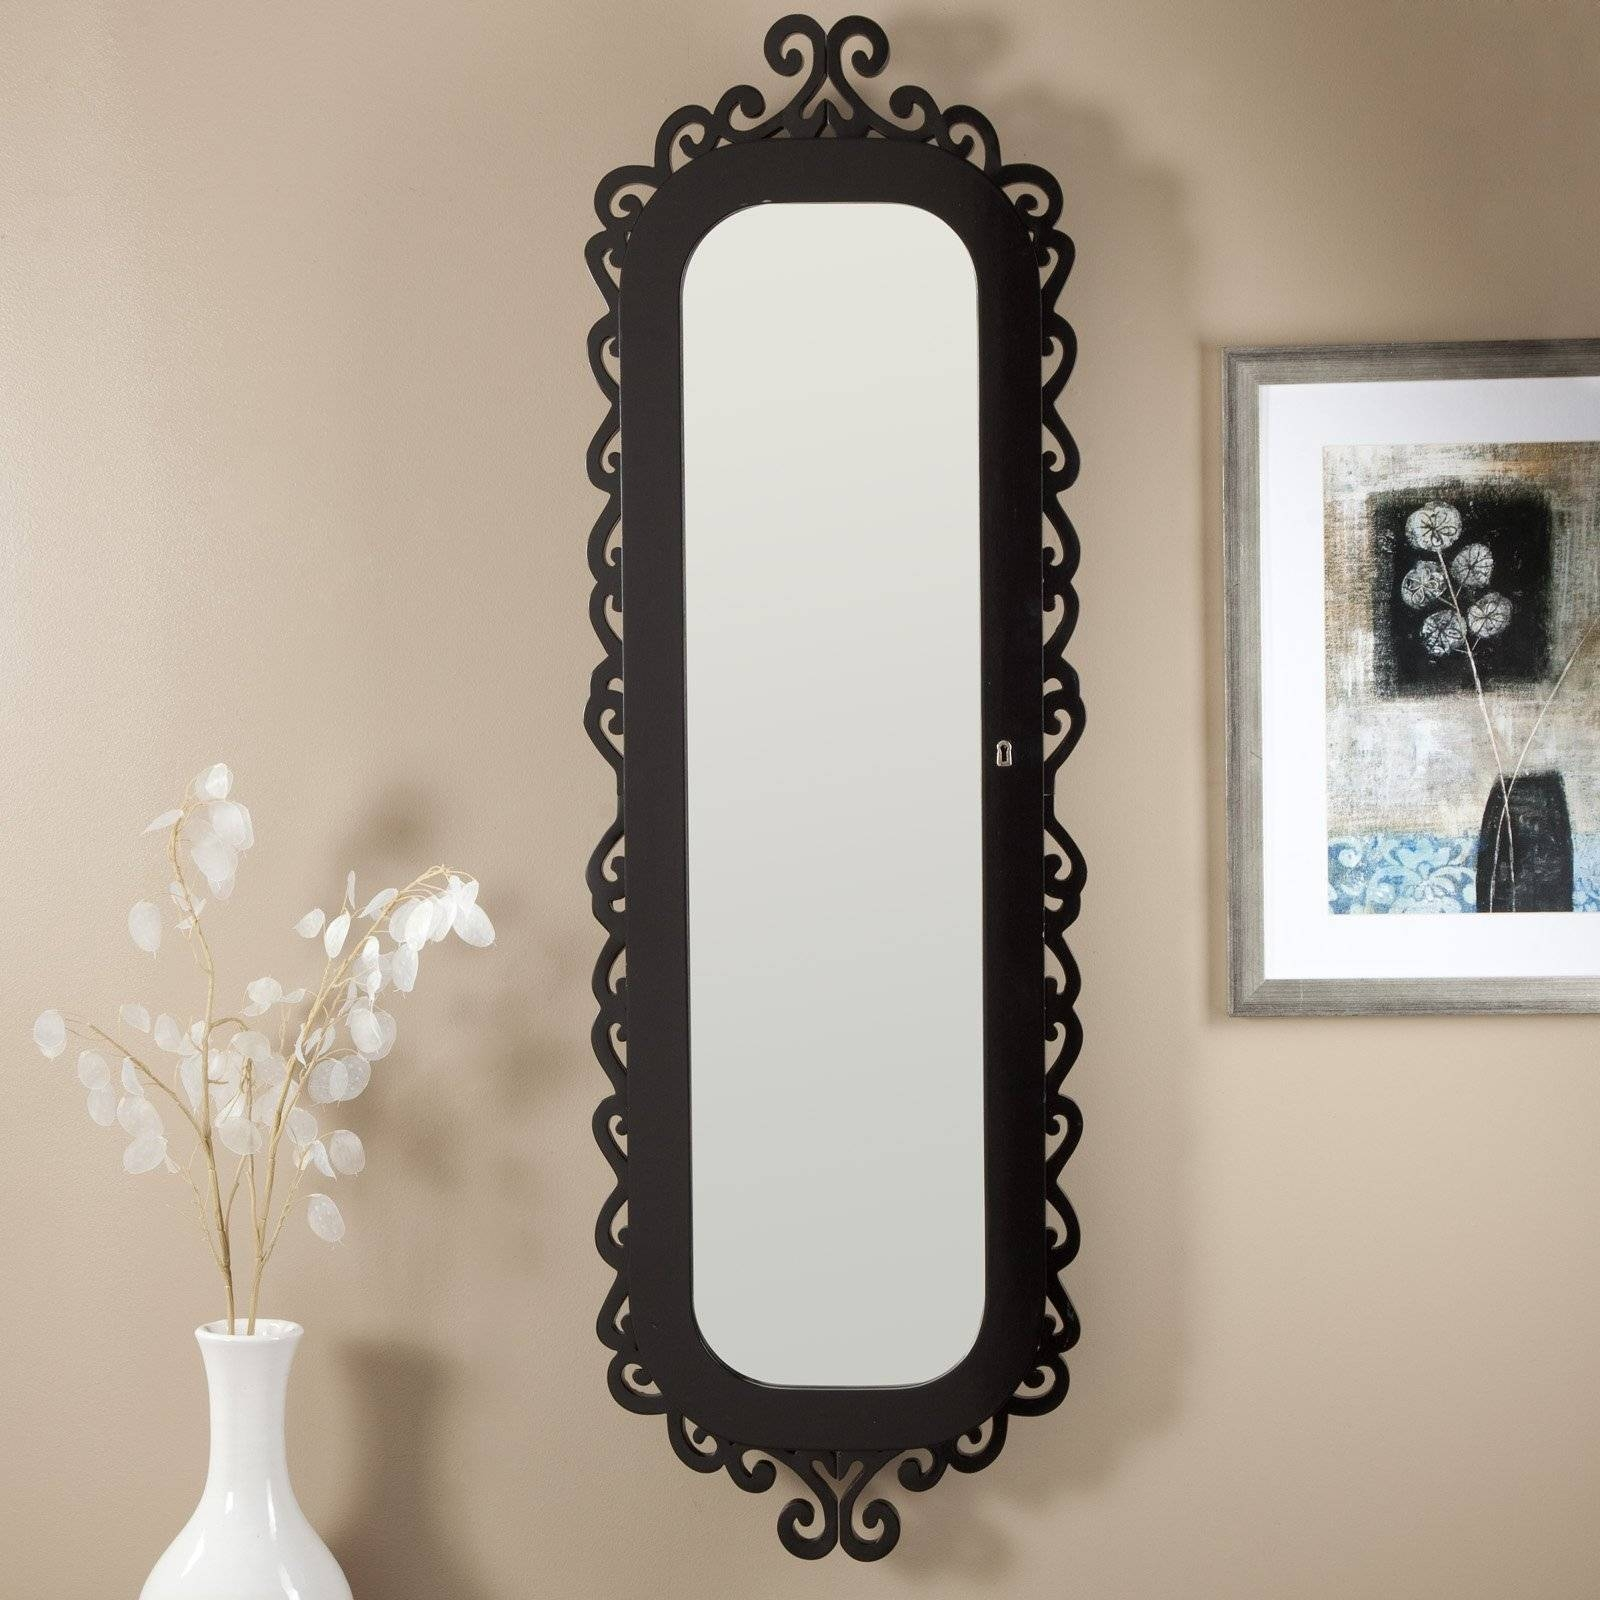 Fascinating Black Polished Iron Wall Mirrors With Vintage Style with regard to Cheap Vintage Style Mirrors (Image 8 of 15)